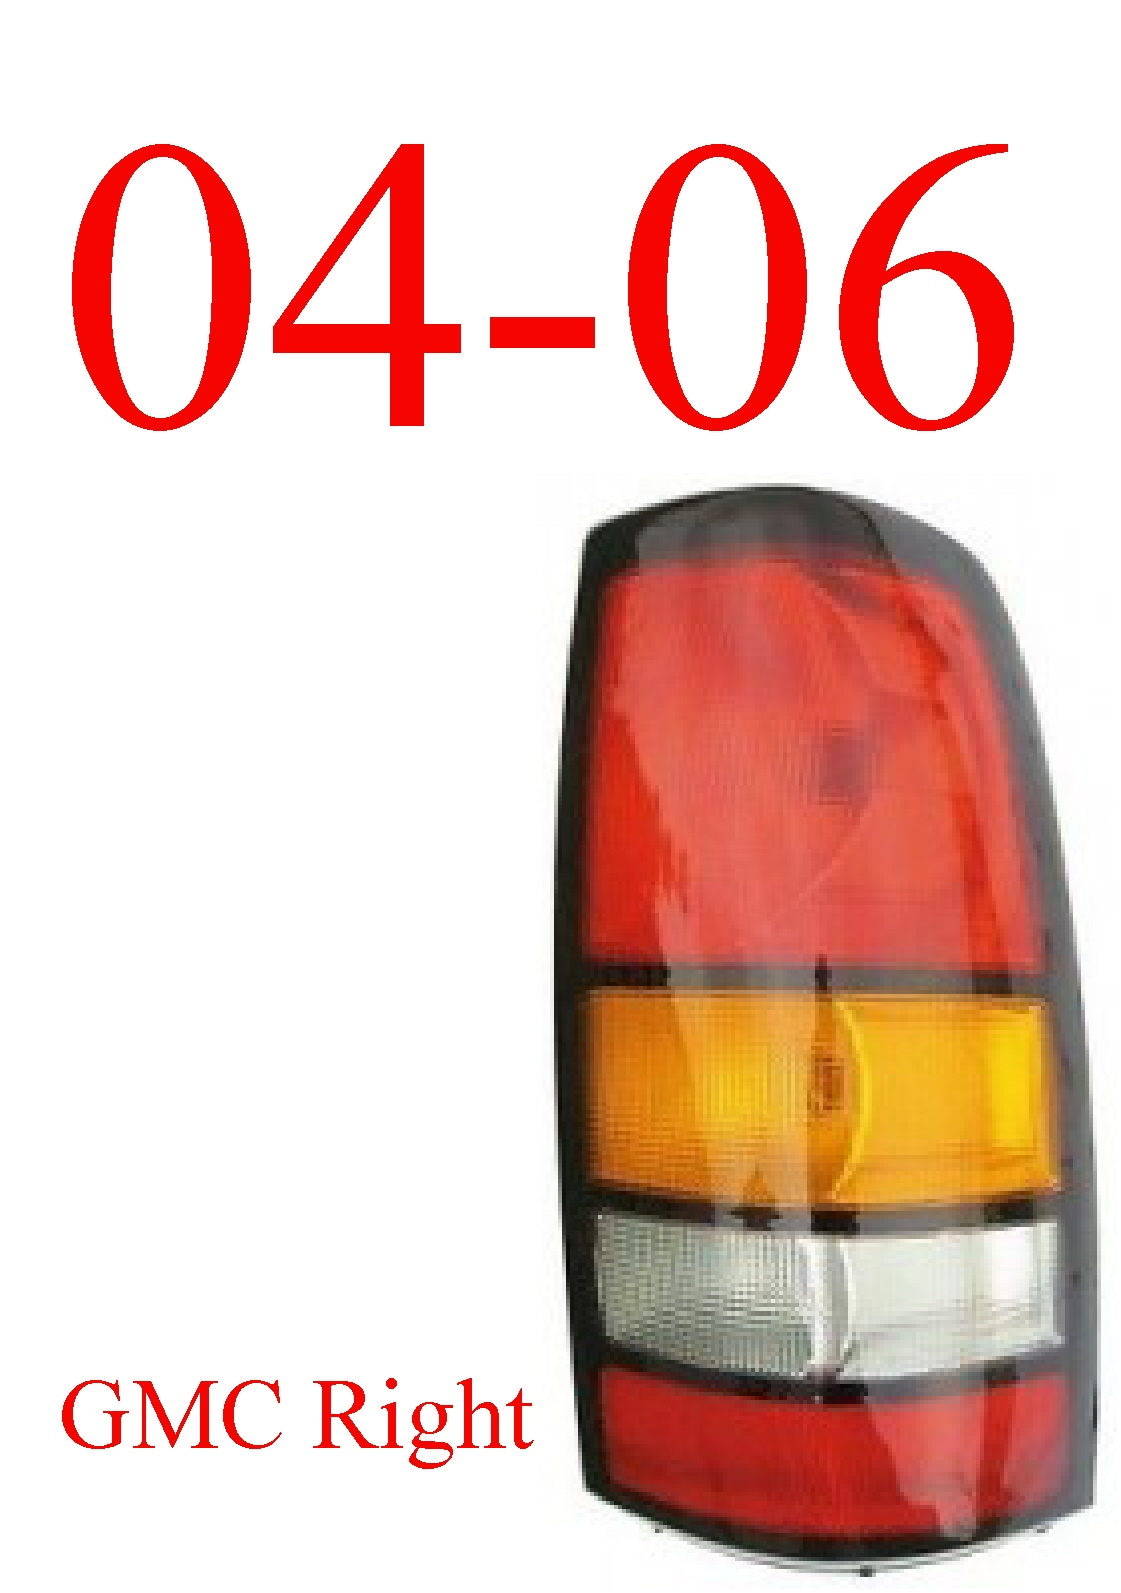 04-06 GMC Truck Right Tail Light Assembly